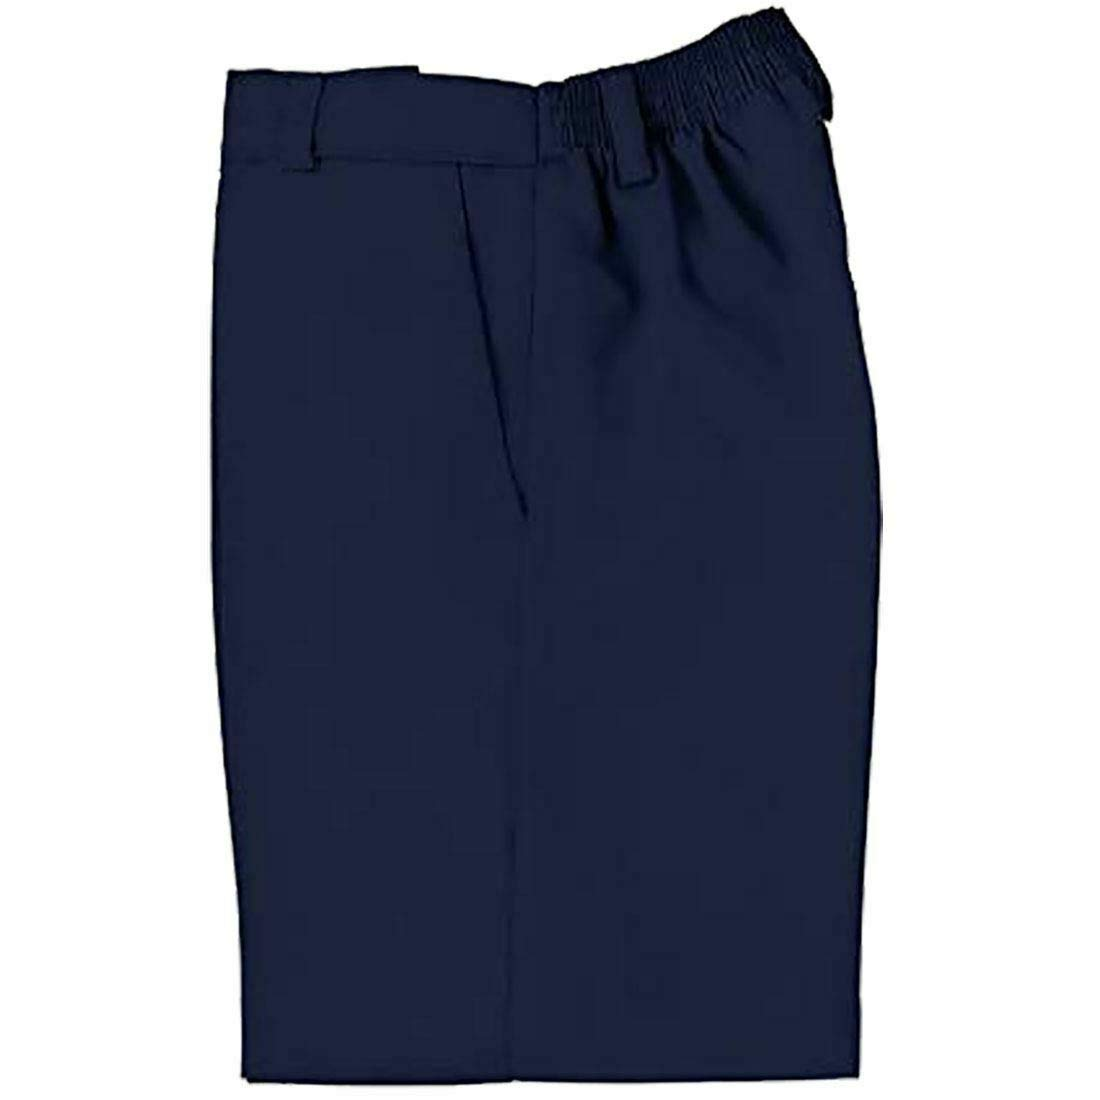 Fashions island Children Two Side Pockets Black Grey Navy Zip and Clip Uniform Shorts 3-16 Years